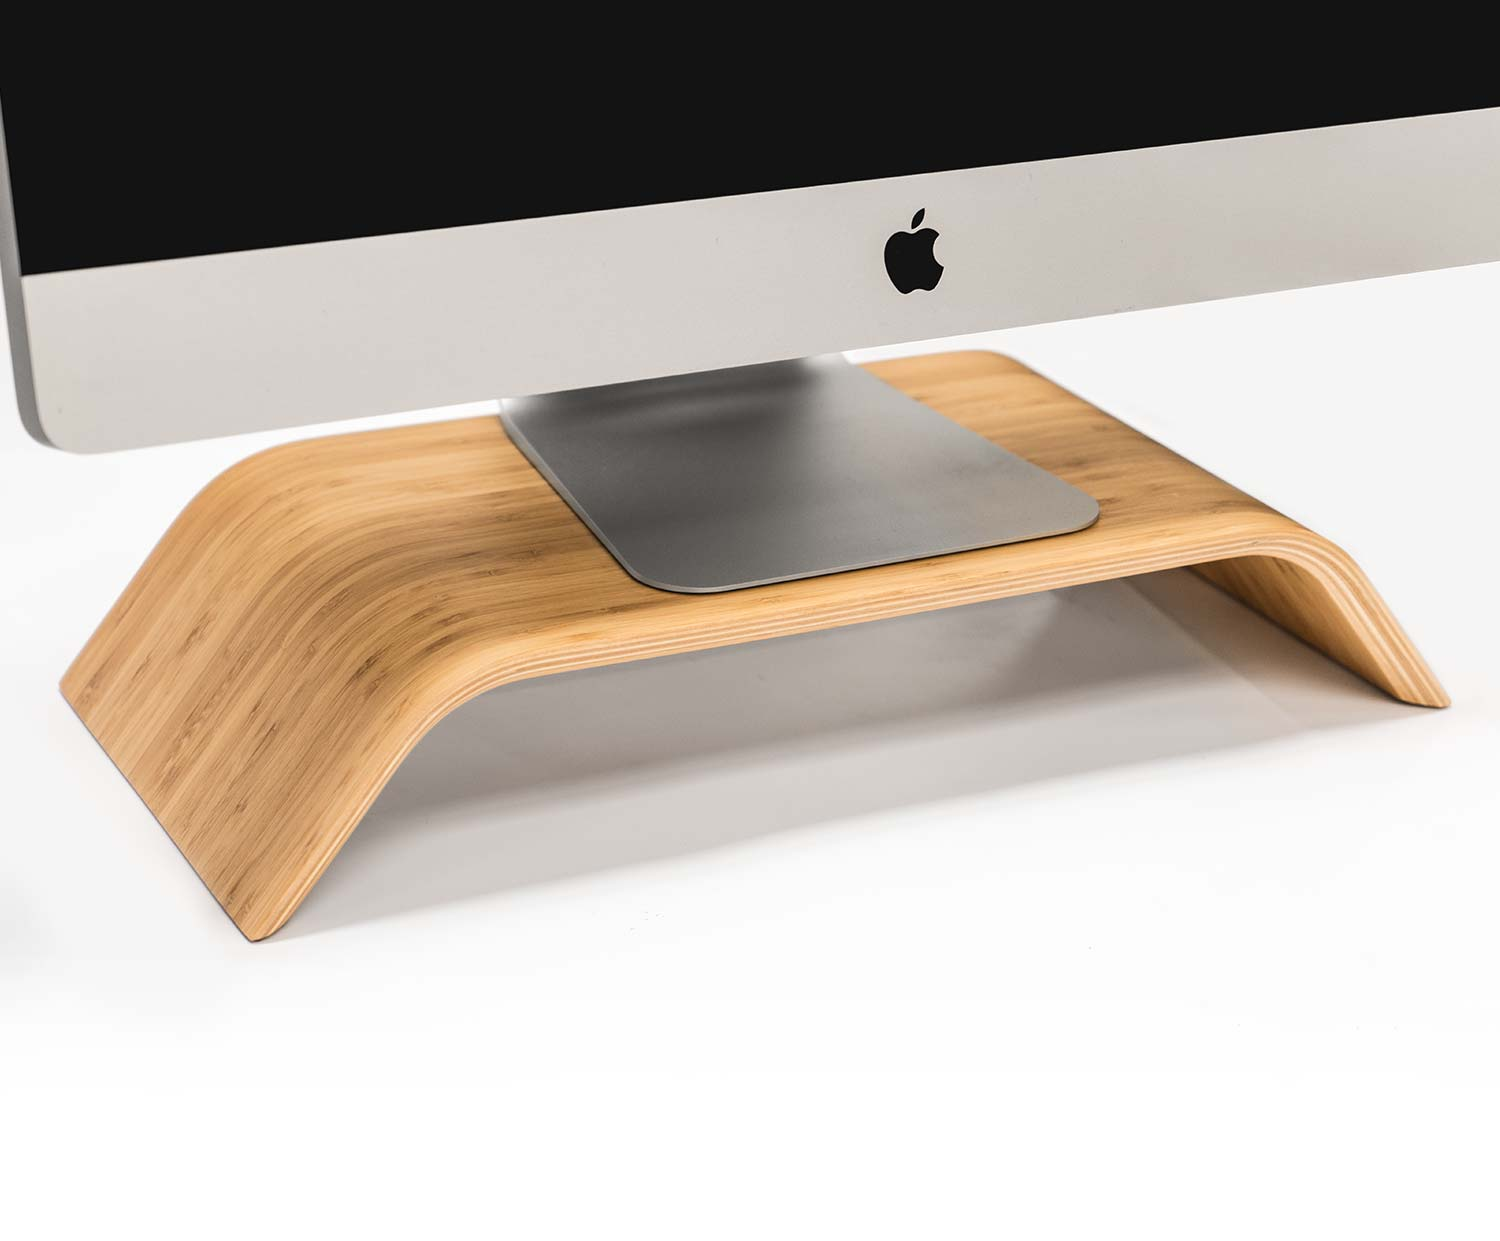 holz stand f r imac. Black Bedroom Furniture Sets. Home Design Ideas